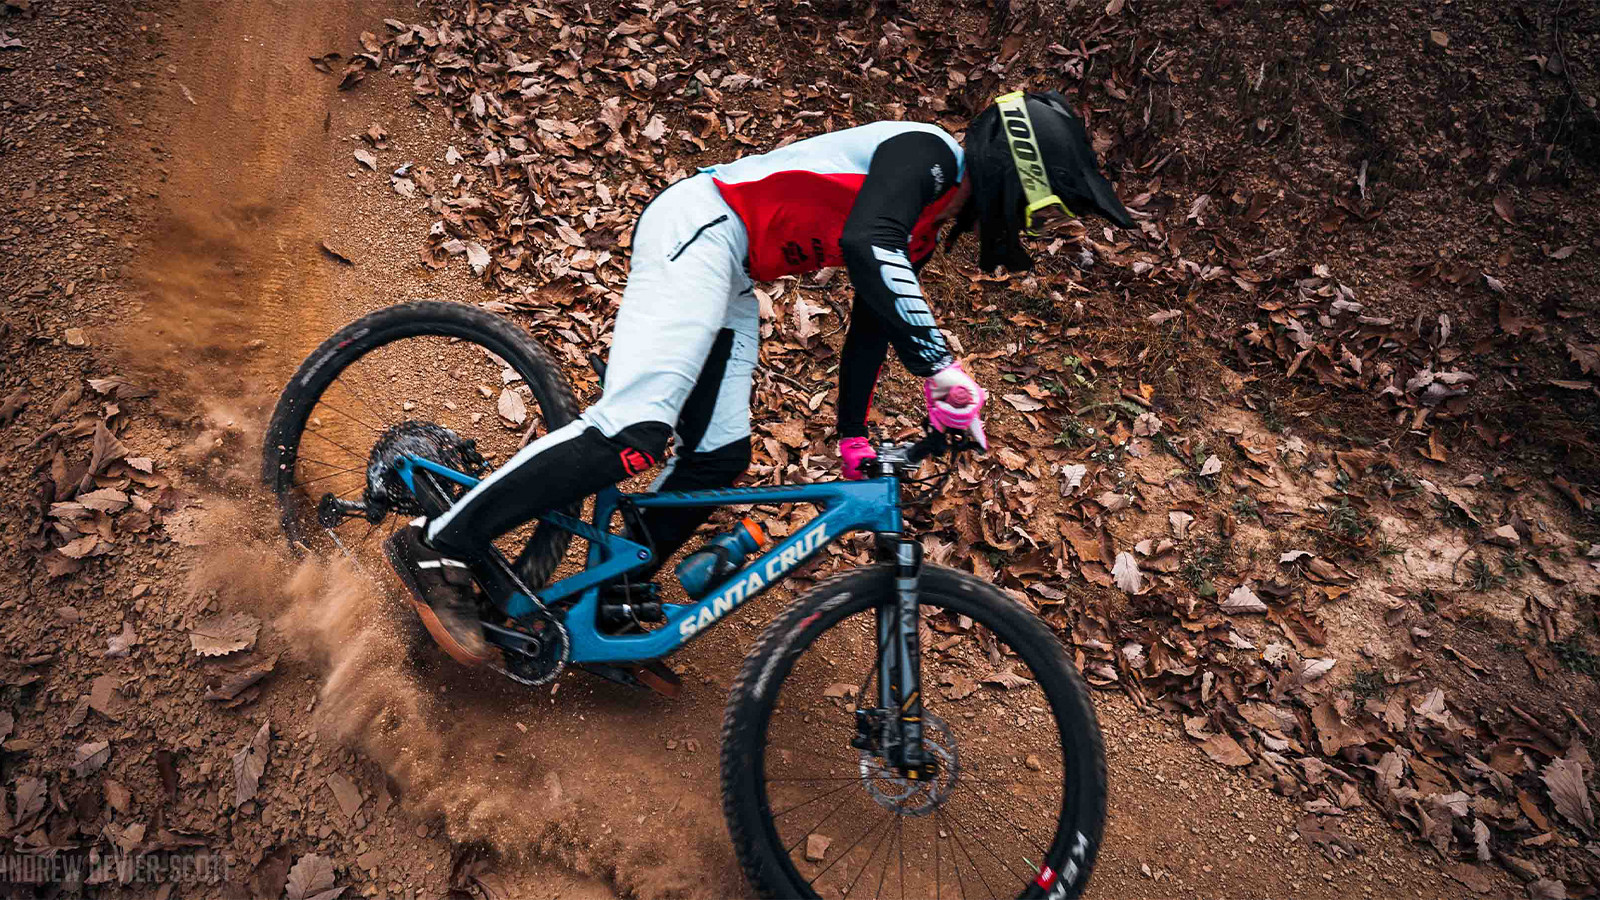 An Absolute Blast! All-Out Riding and Creative Editing Make Fresh Air an Instant Favorite